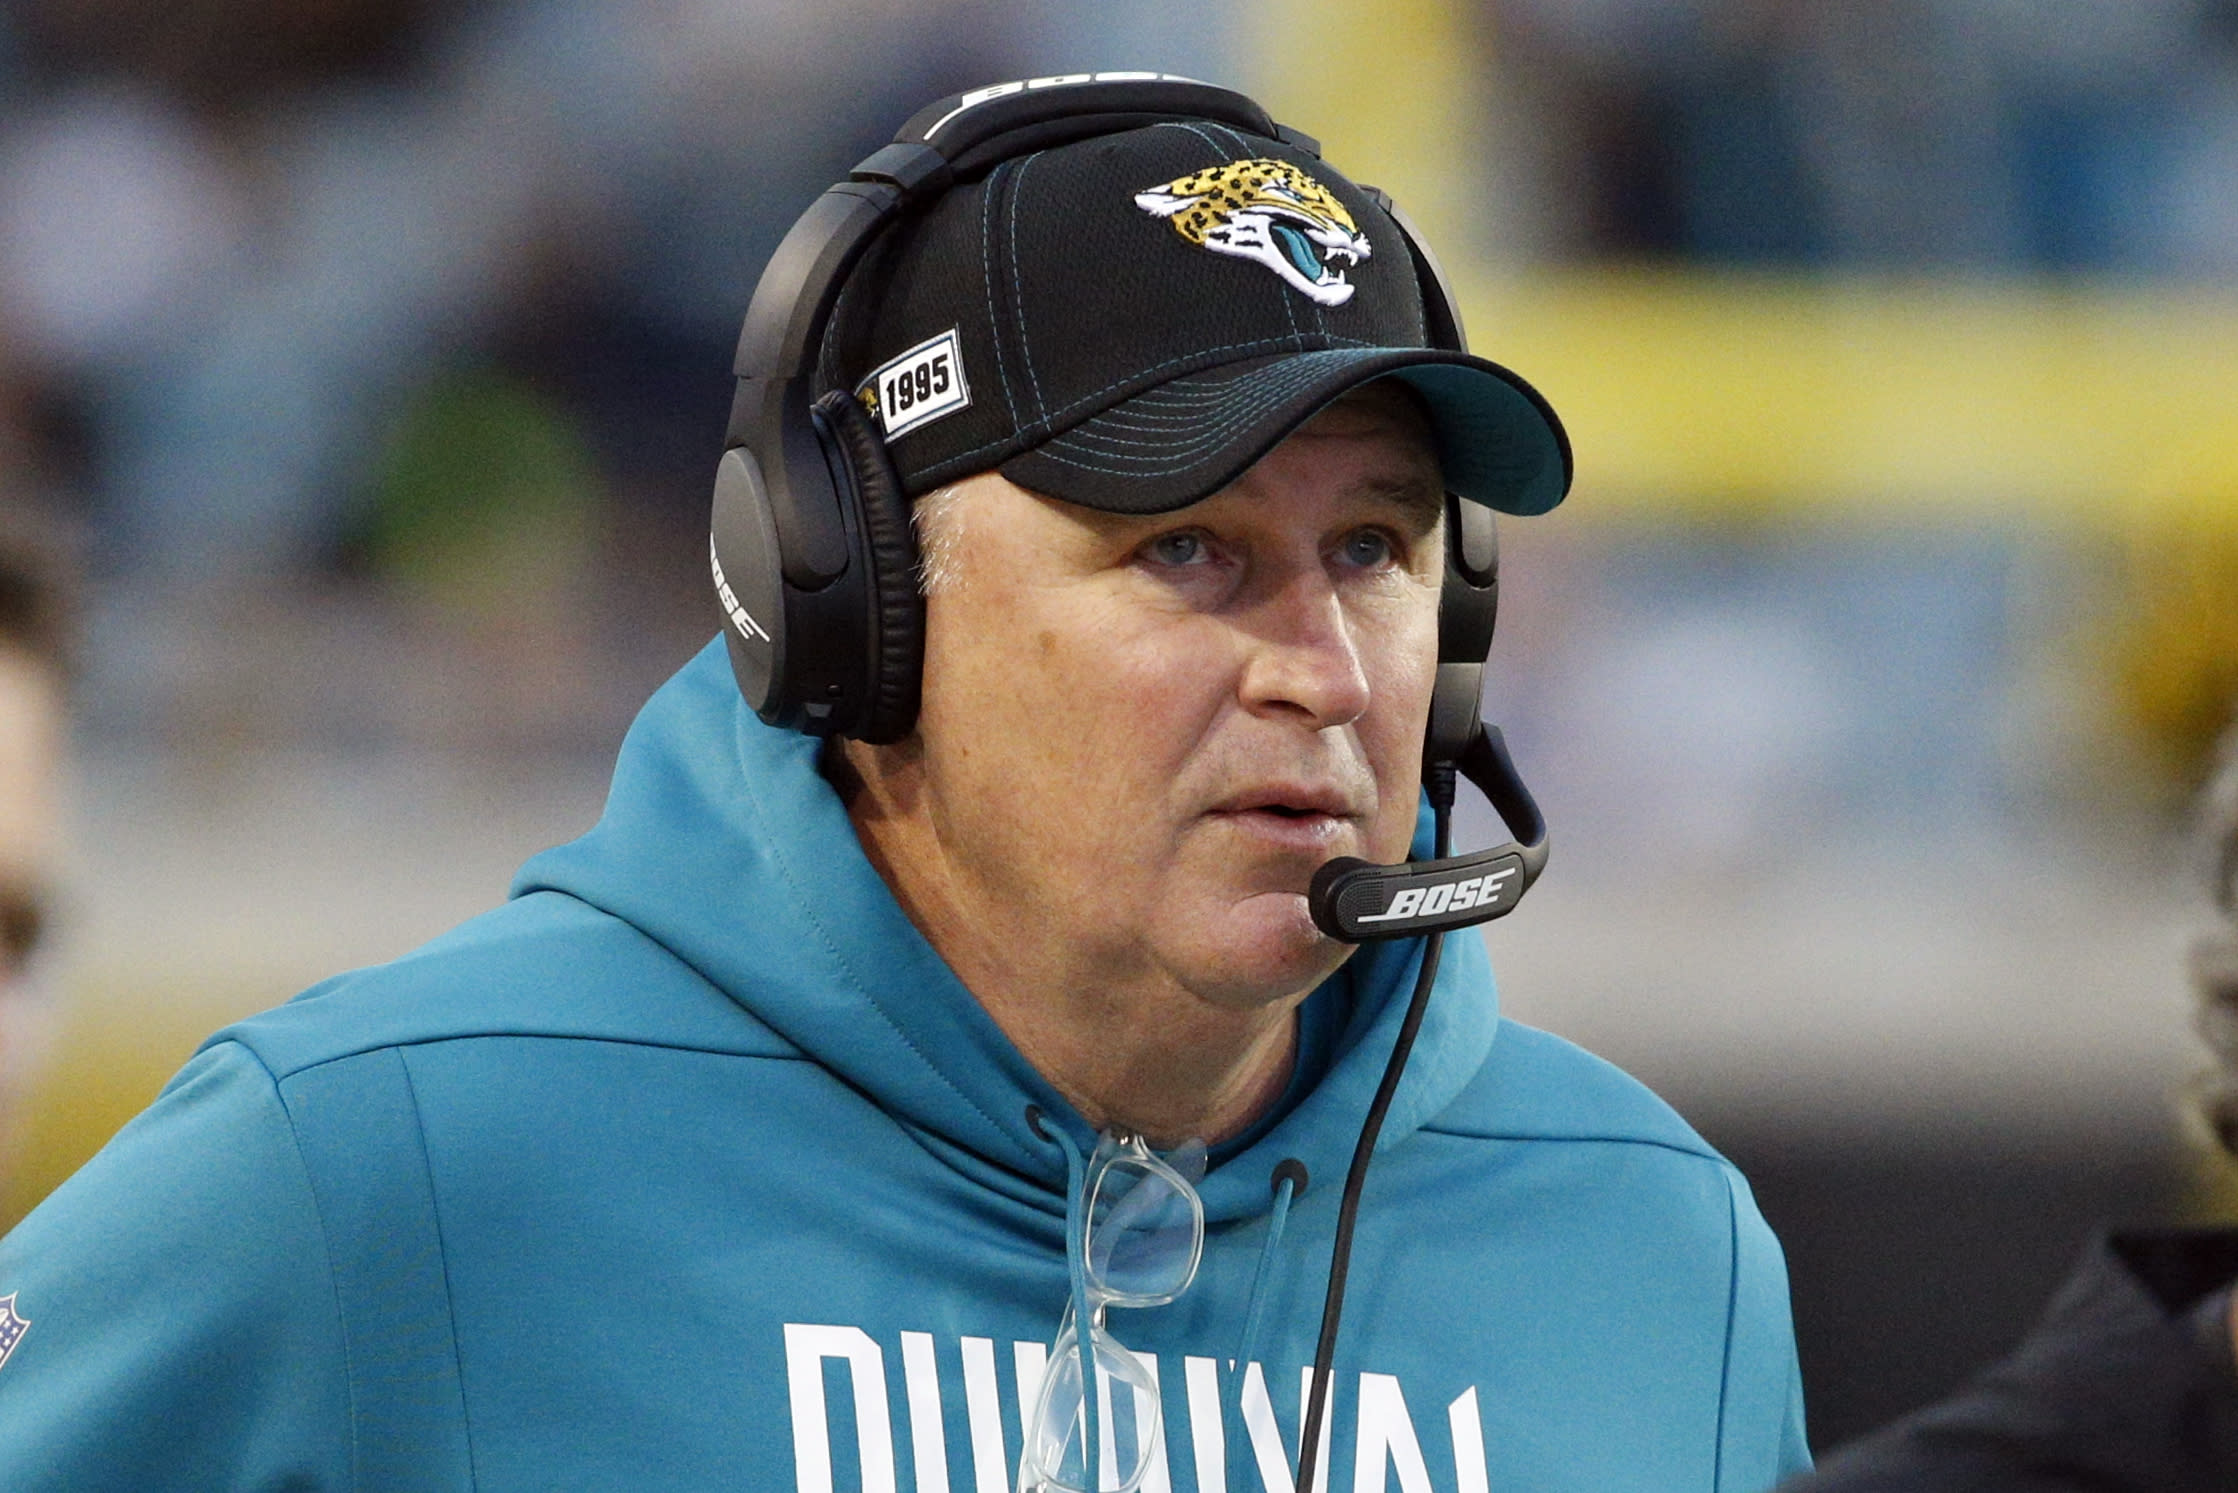 FILE - Jacksonville Jaguars head coach Doug Marrone watches his team against the Los Angeles Chargers during the first half of an NFL football game, Sunday, Dec. 8, 2019, in Jacksonville, Fla. The heat is on — and the games haven't even kicked off yet. That's life in the NFL for some coaches who enter the regular season knowing they need to guide their squads through what will be a most unusual regular season and at least keep them in playoff contention into December.(AP Photo/Stephen B. Morton, File)